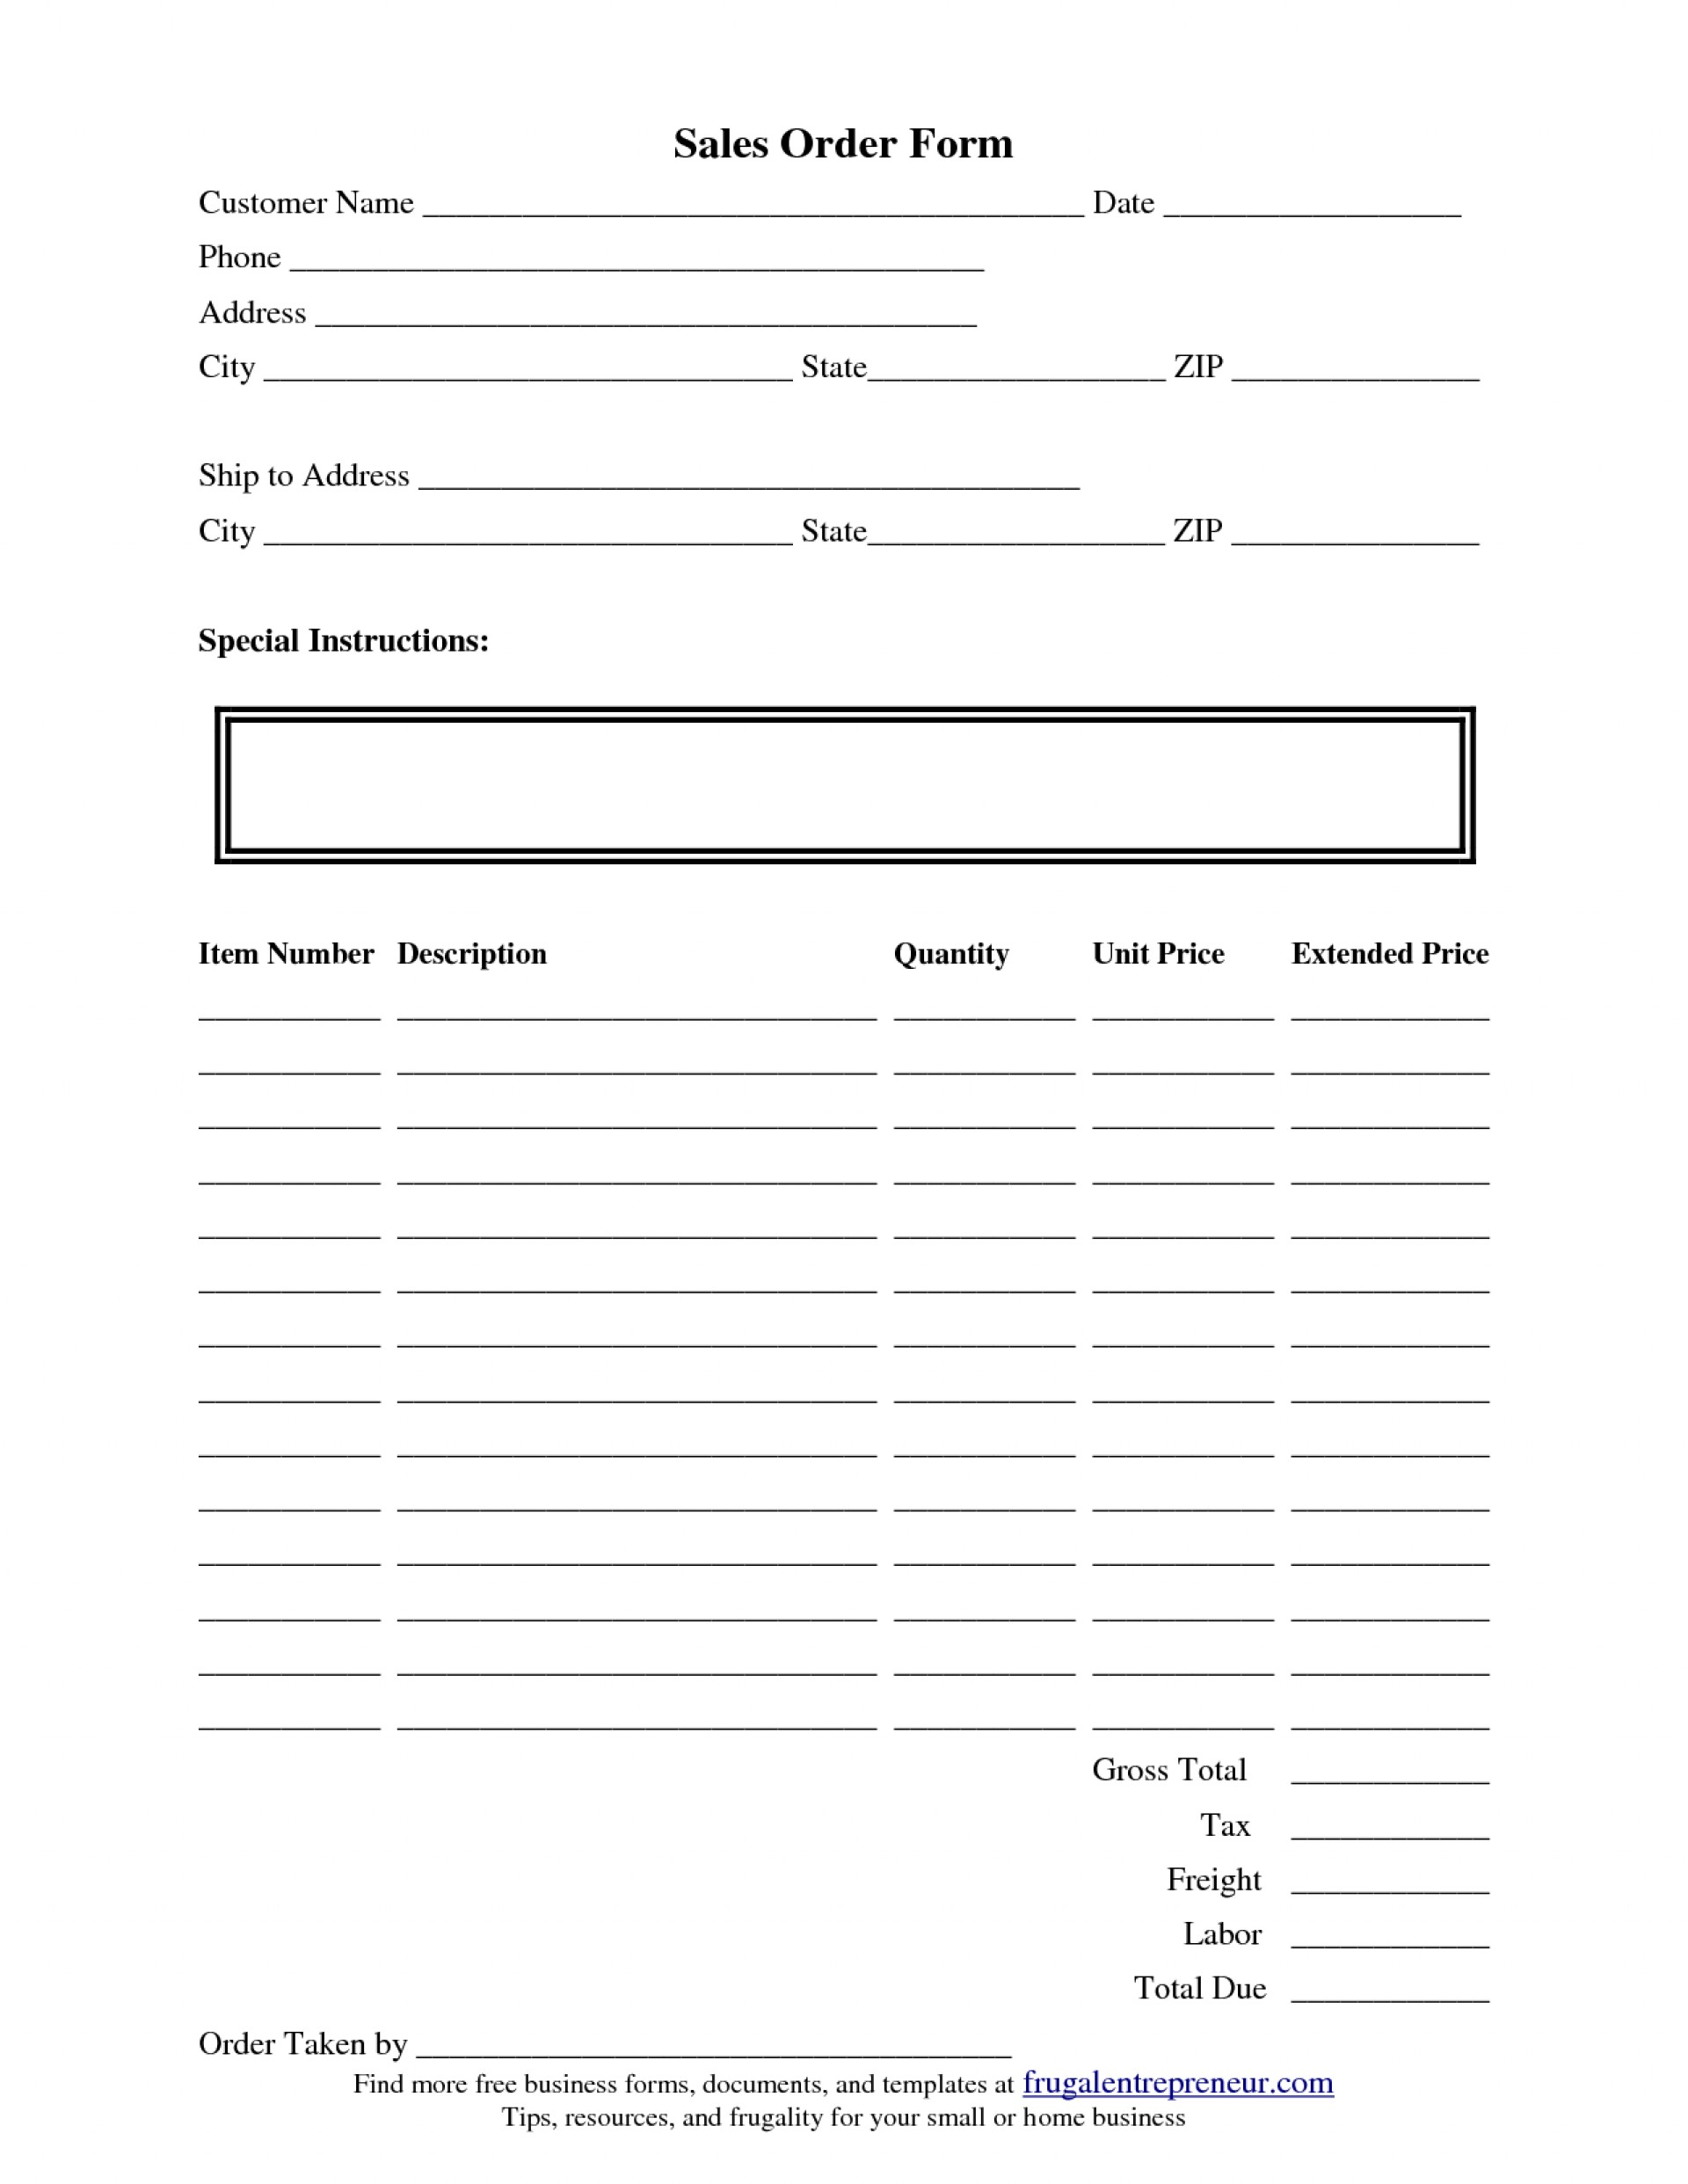 Where To Buy Irs Form 1099